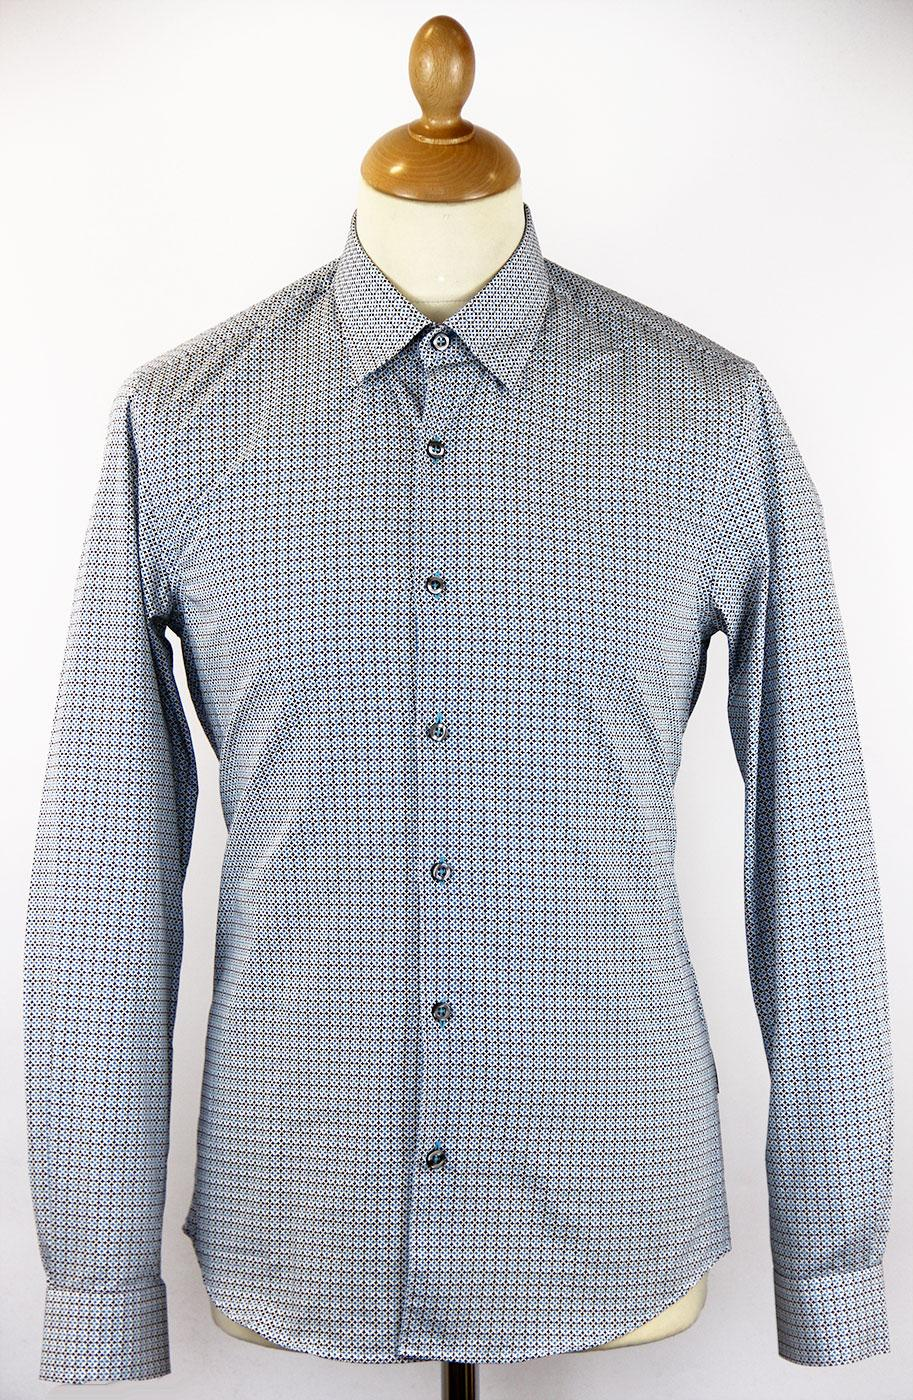 Legard PETER WERTH Mod Button Under Op Art Shirt